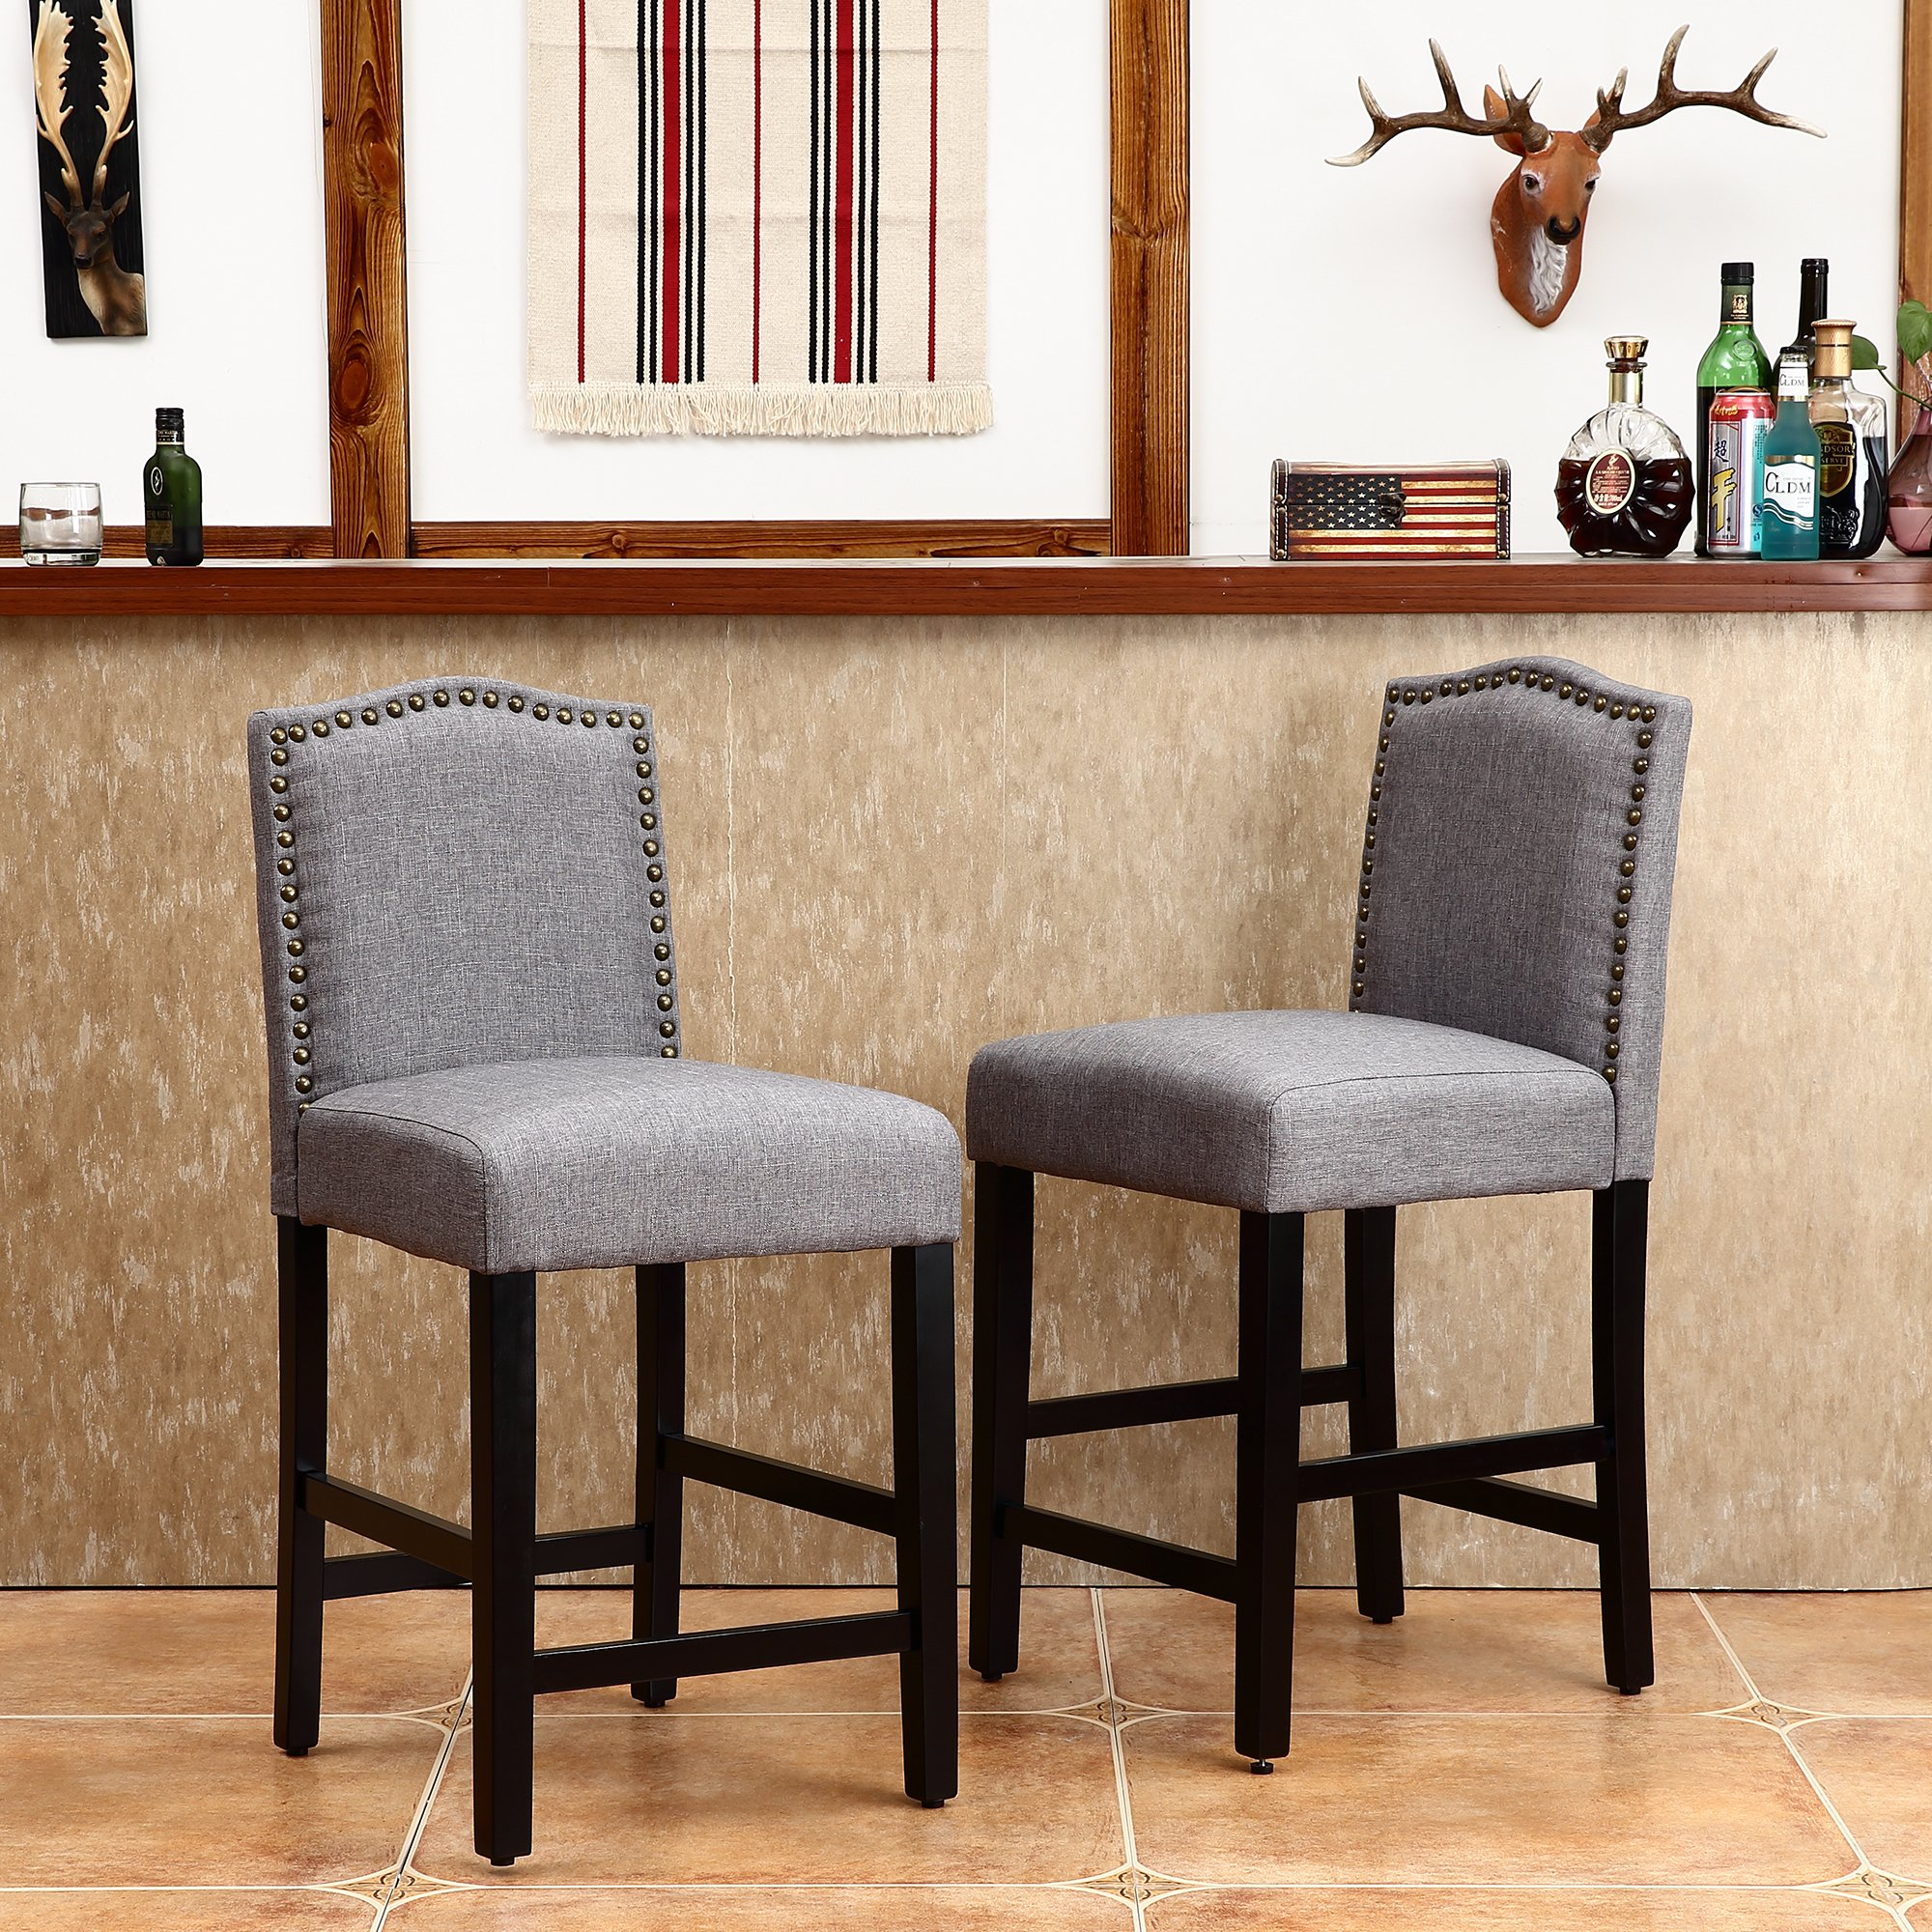 LSSBOUGHT Set of 2 Classic Fabric Barstools Dining High Counter Height Side Chairs (Seat Height: 24'', Gray)